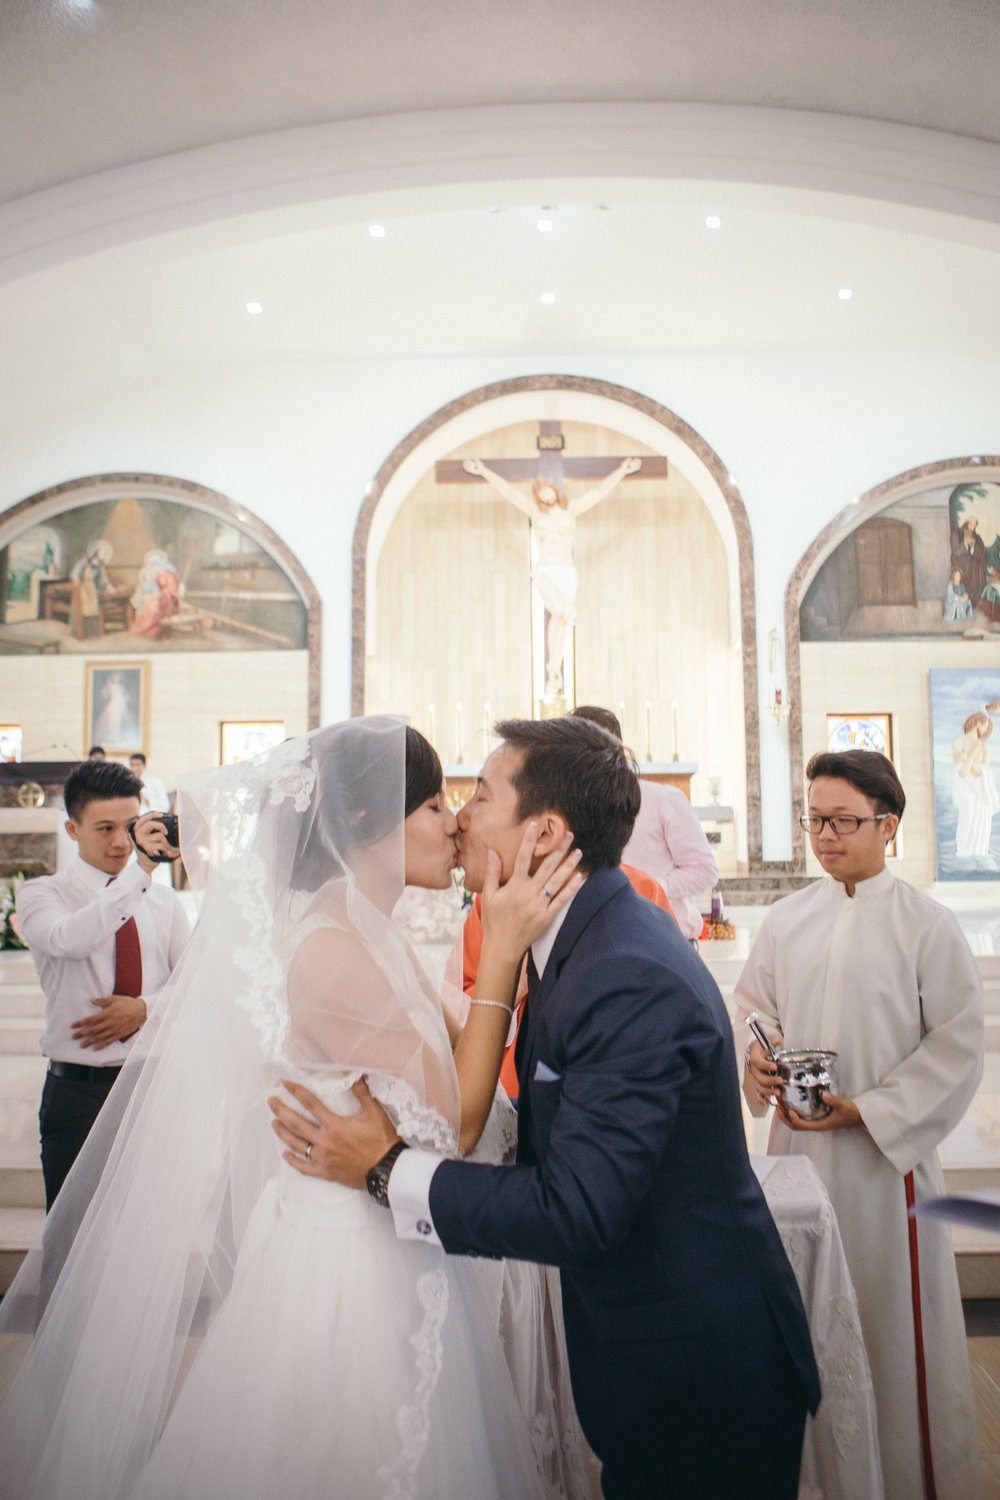 Juxtapose Pix - Wedding - Kelvin & Serene - church regent hotel 00031.jpg